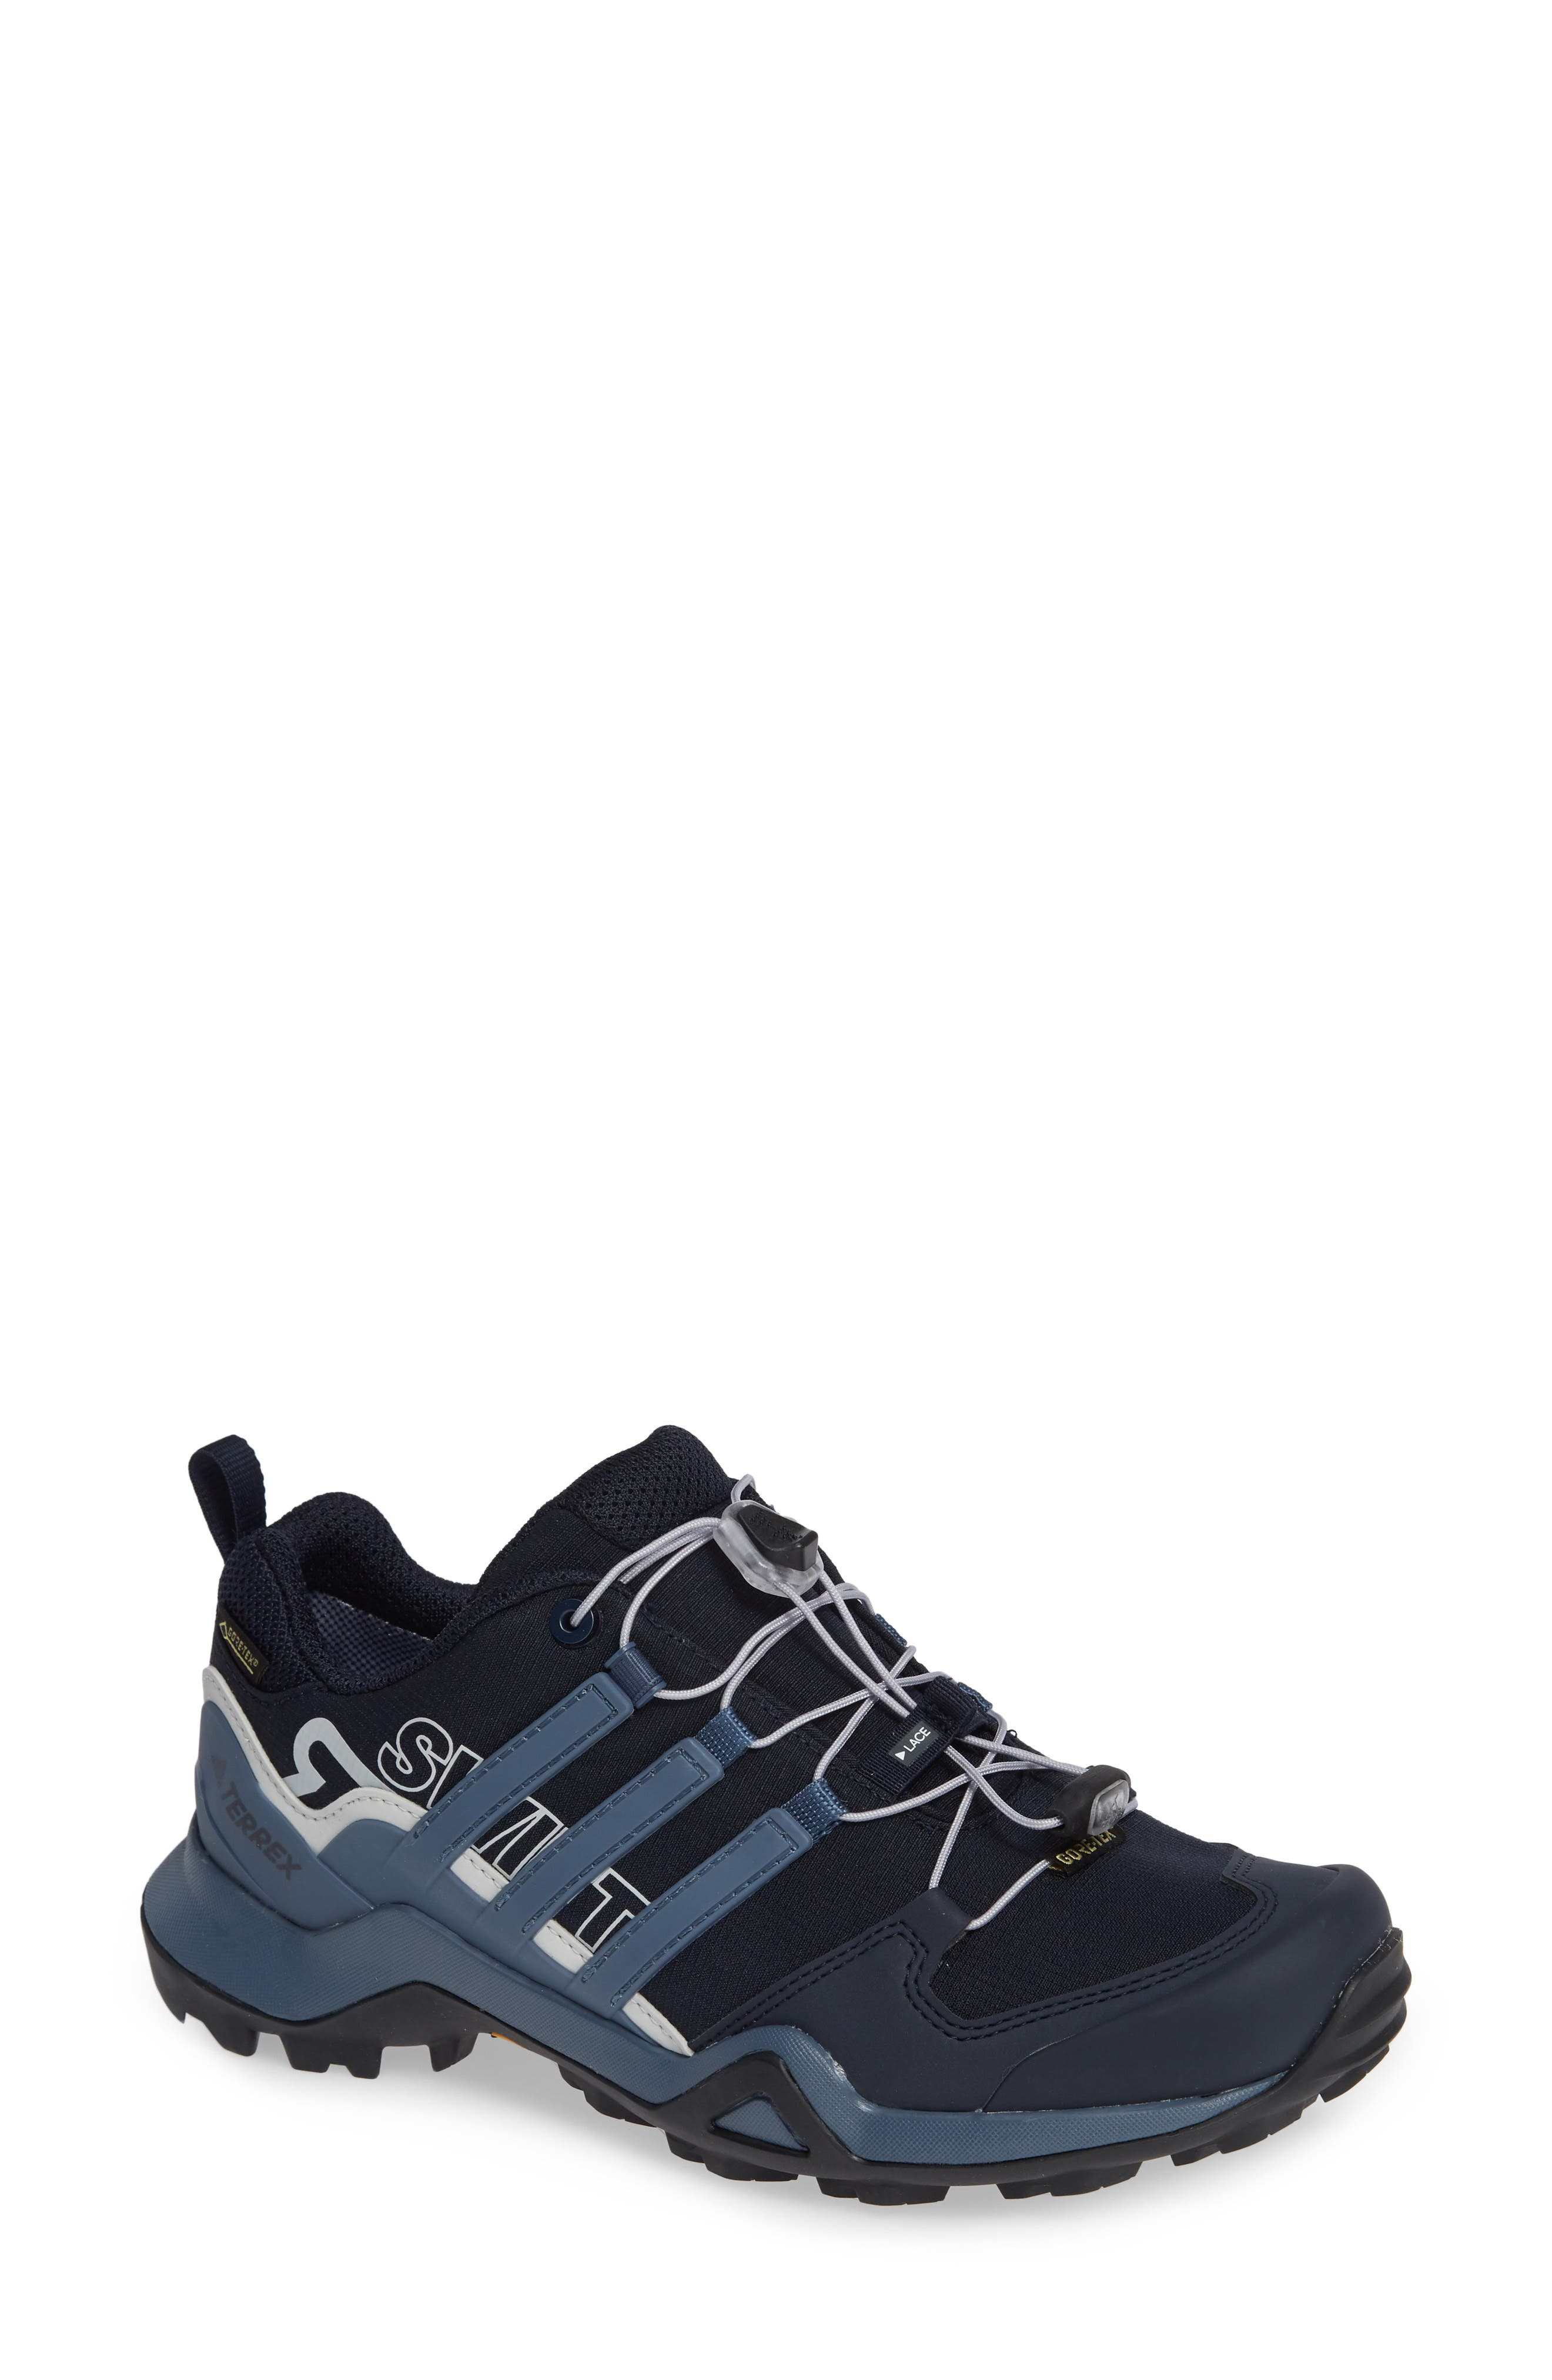 Terrex Swift R2 Gore-Tex<sup>®</sup> Hiking Shoe,                         Main,                         color, LEGEND INK/ TECH INK/ GREY